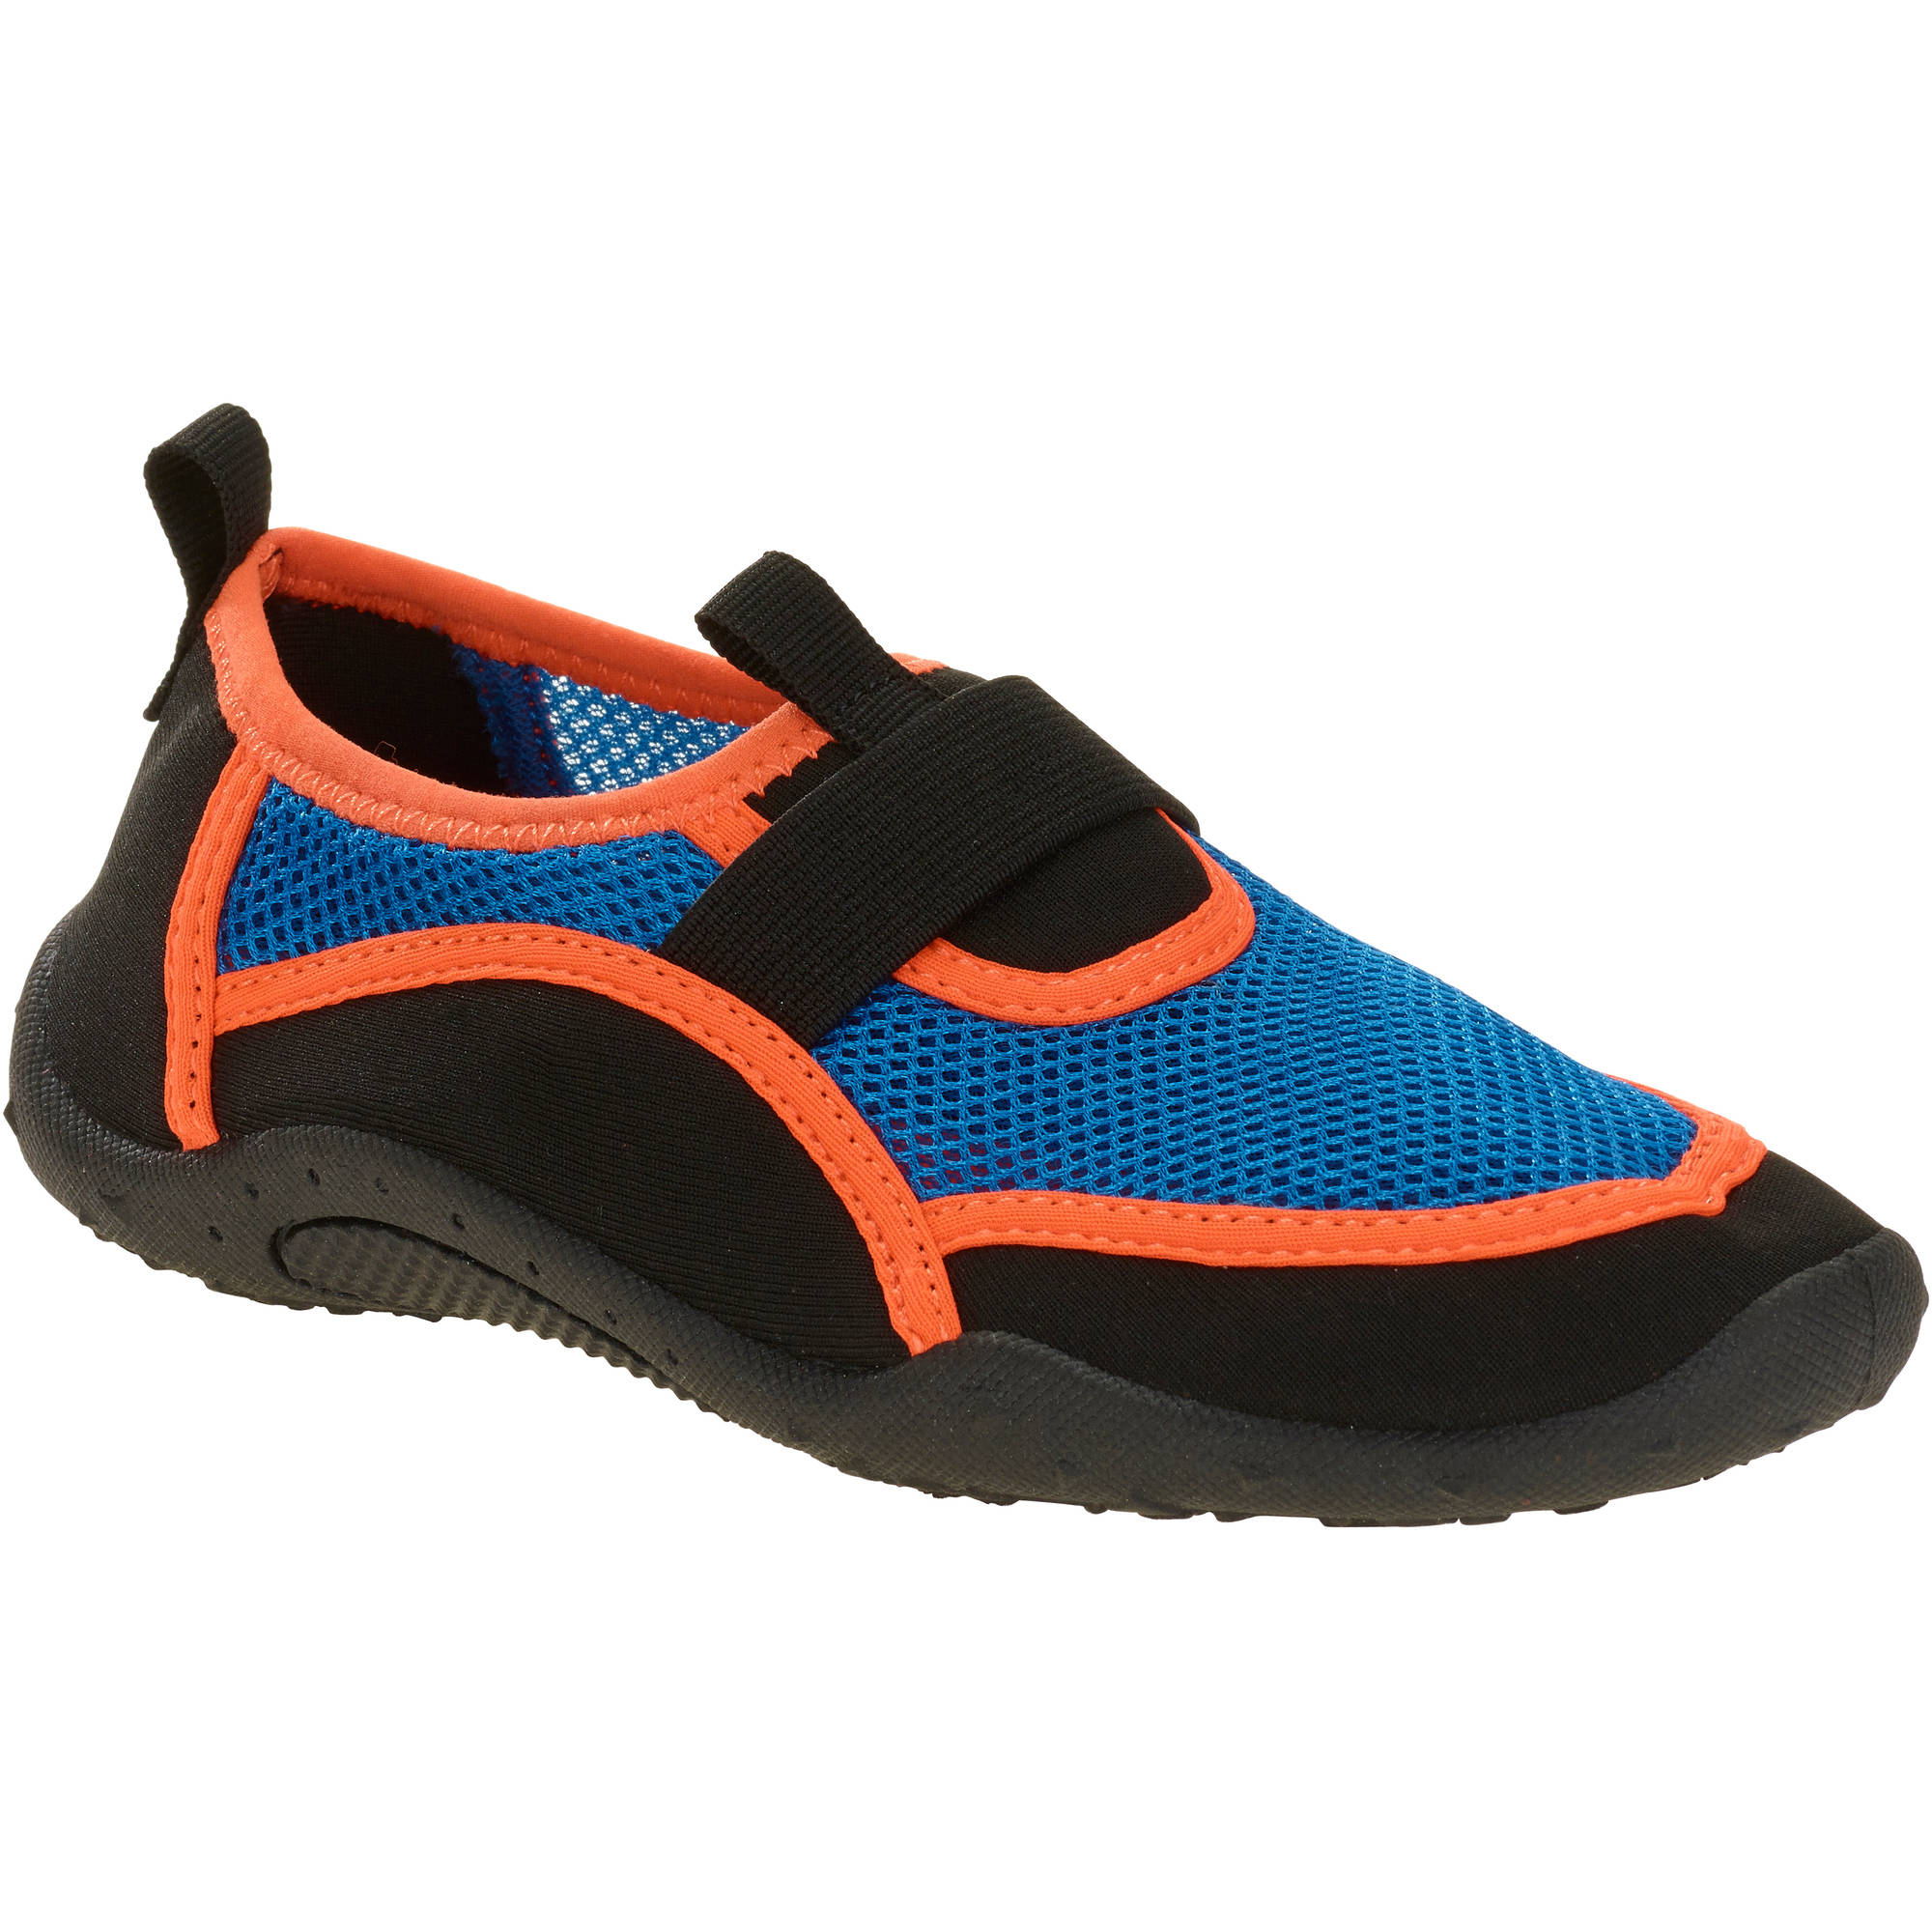 Free shipping BOTH ways on boys water shoes, from our vast selection of styles. Fast delivery, and 24/7/ real-person service with a smile. Click or call